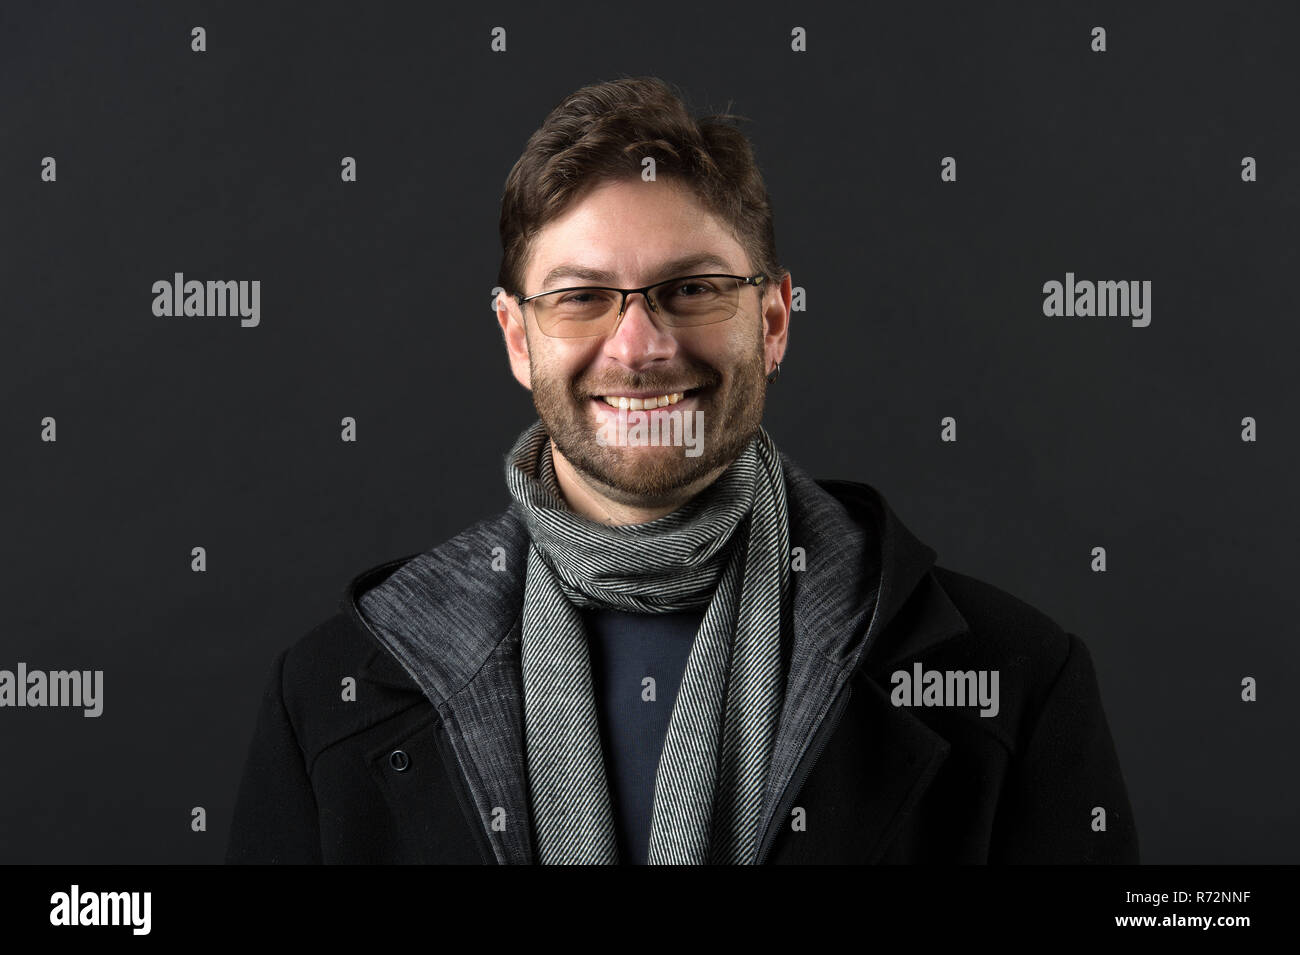 Bearded man in scarf and coat on dark background. Happy man in glasses on bearded face. Fashion model with beard smile on dark background. Autumn style and trend. Fashion accessory concept. - Stock Image